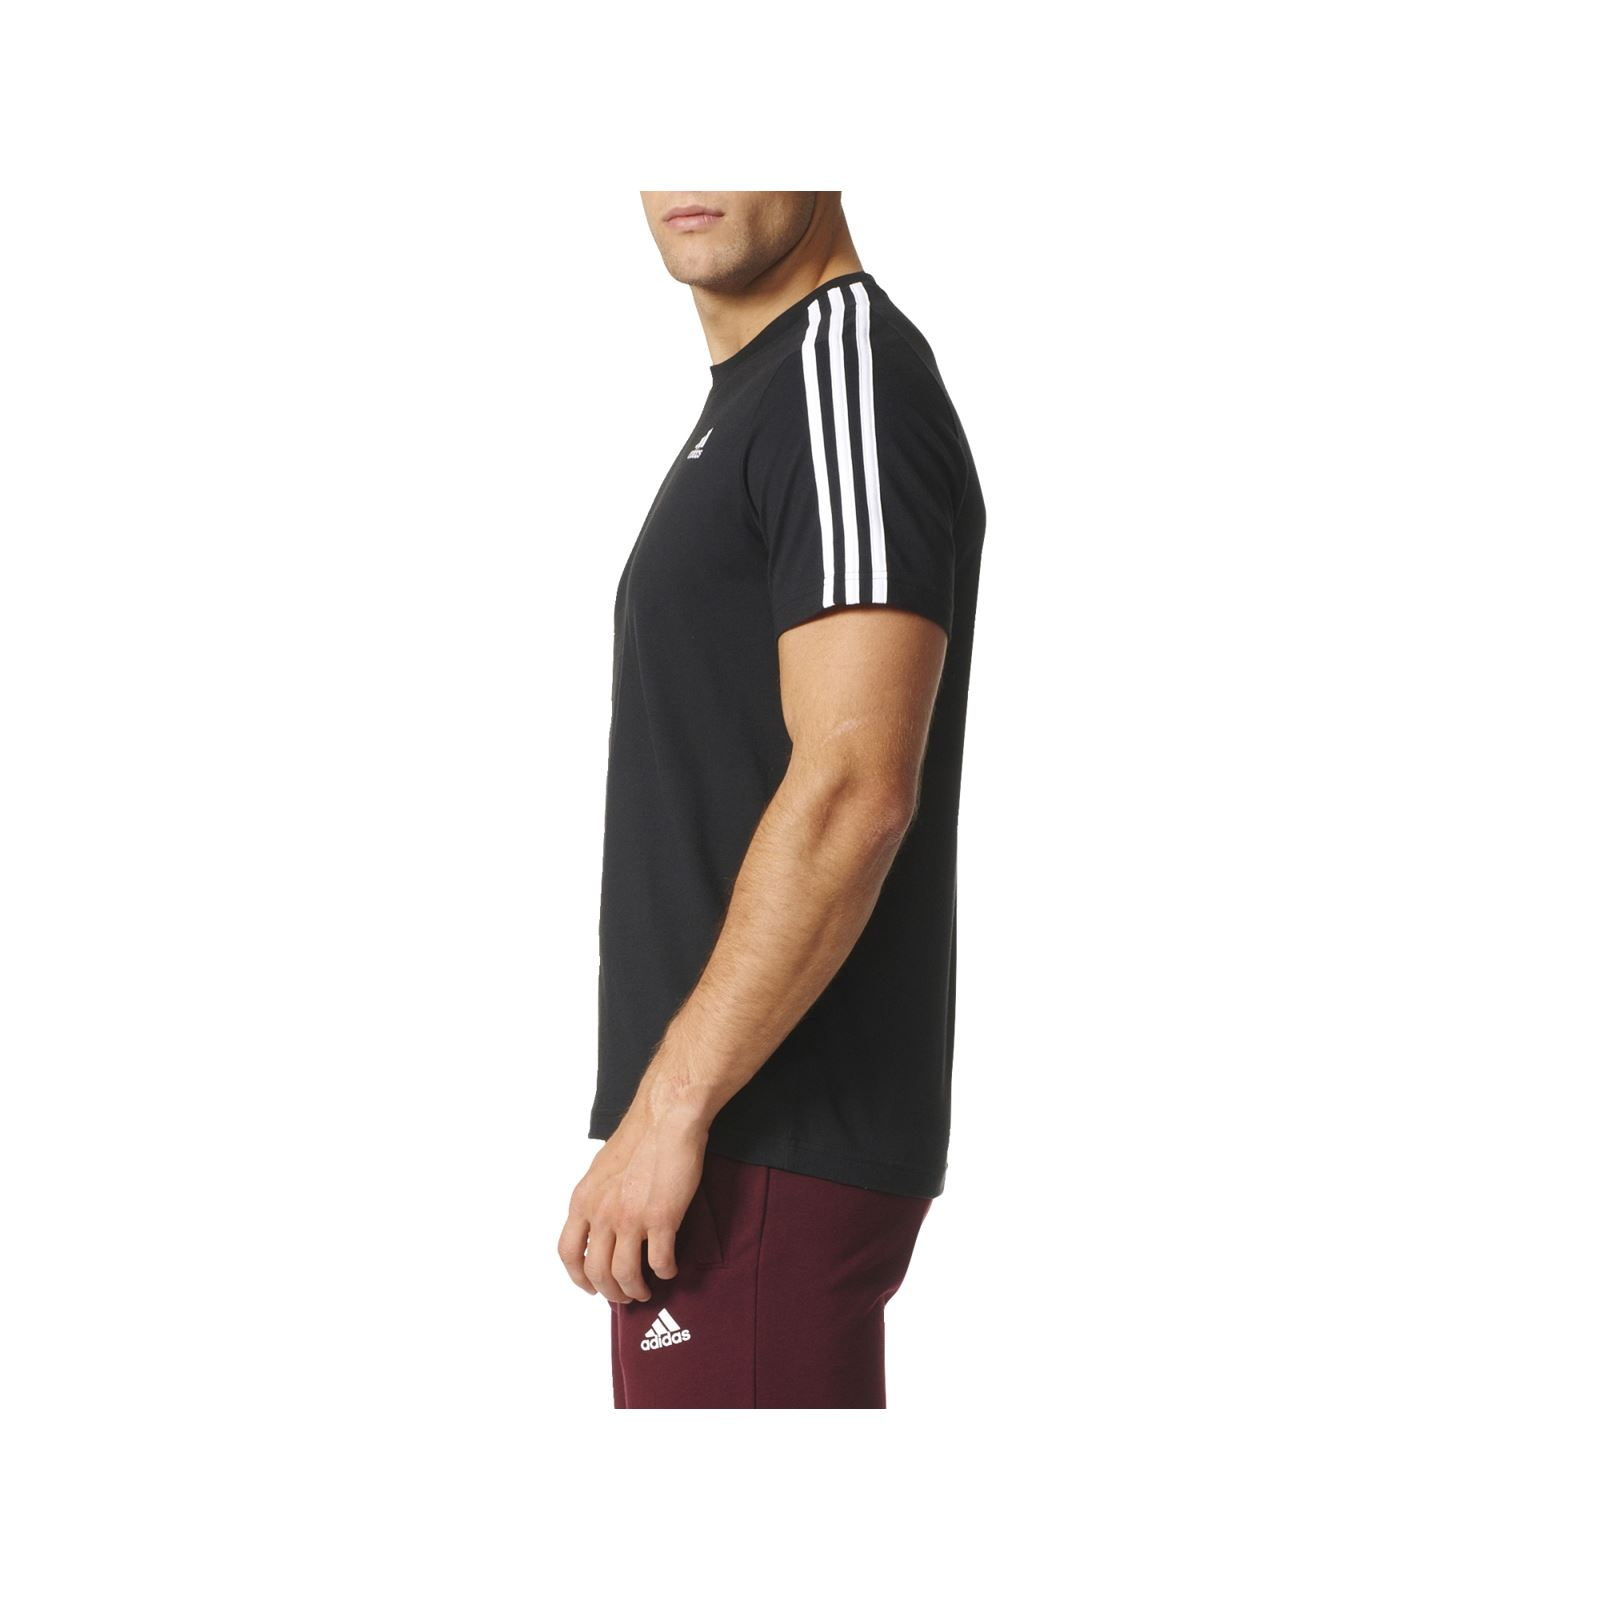 shirt Manches CourtesNoir Adidas Performance T Homme V QdBoCrxeW